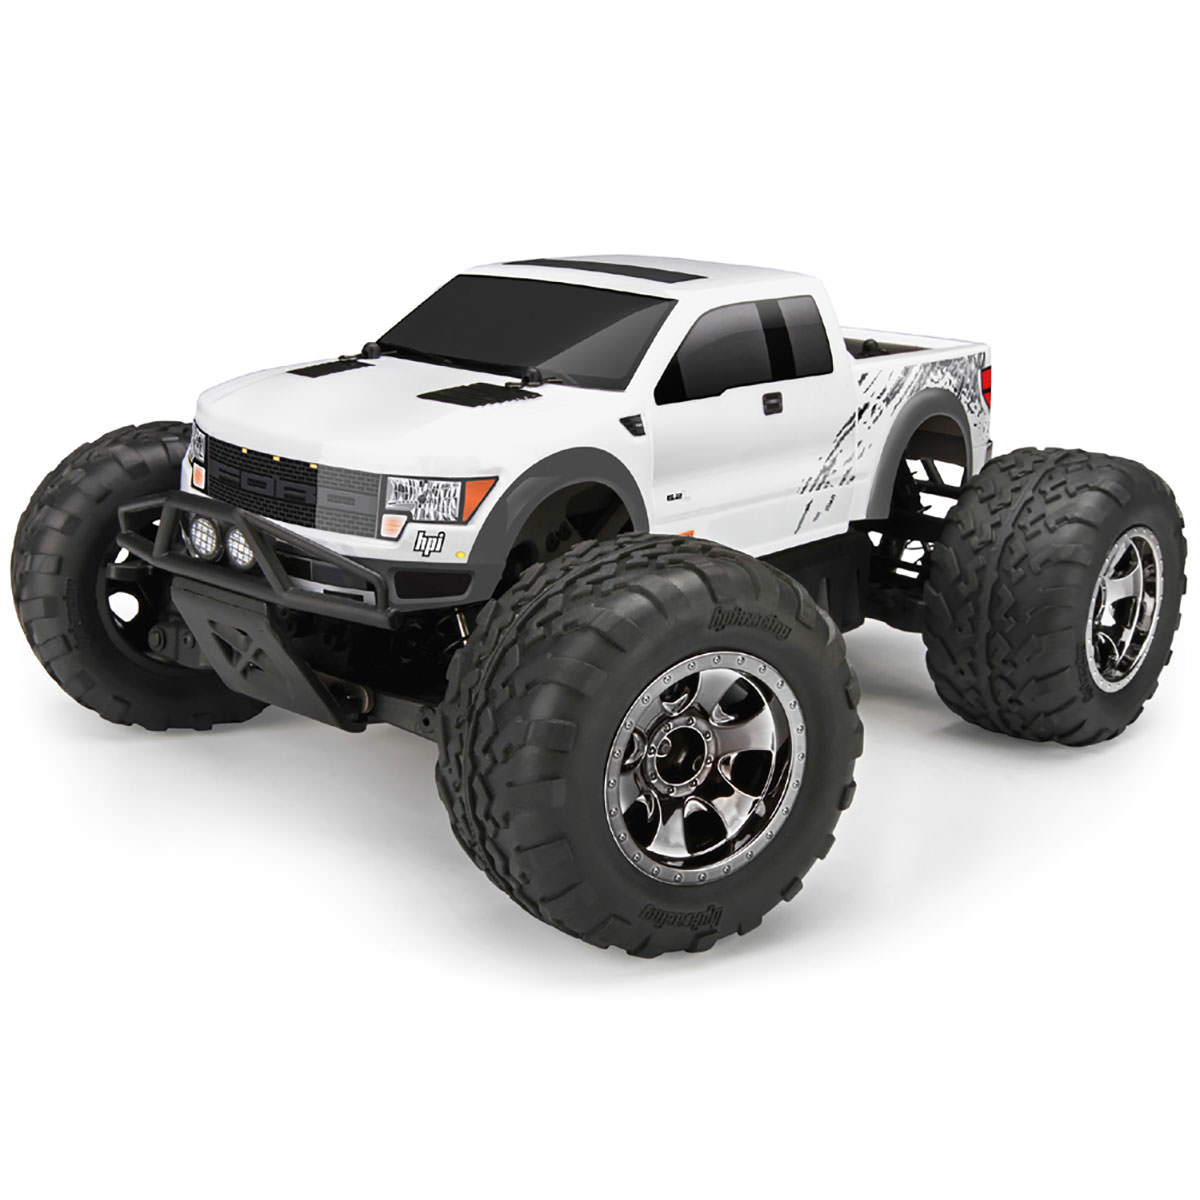 hpi savage nitro rc truck with Hpi Savage Xs Flux Ford Svt Raptor Rc Truck on Hot Racing Graphite Rear Lower Arm Axial Yeti further 1491648017 moreover Team Losi Lst further Article besides 2014020202.